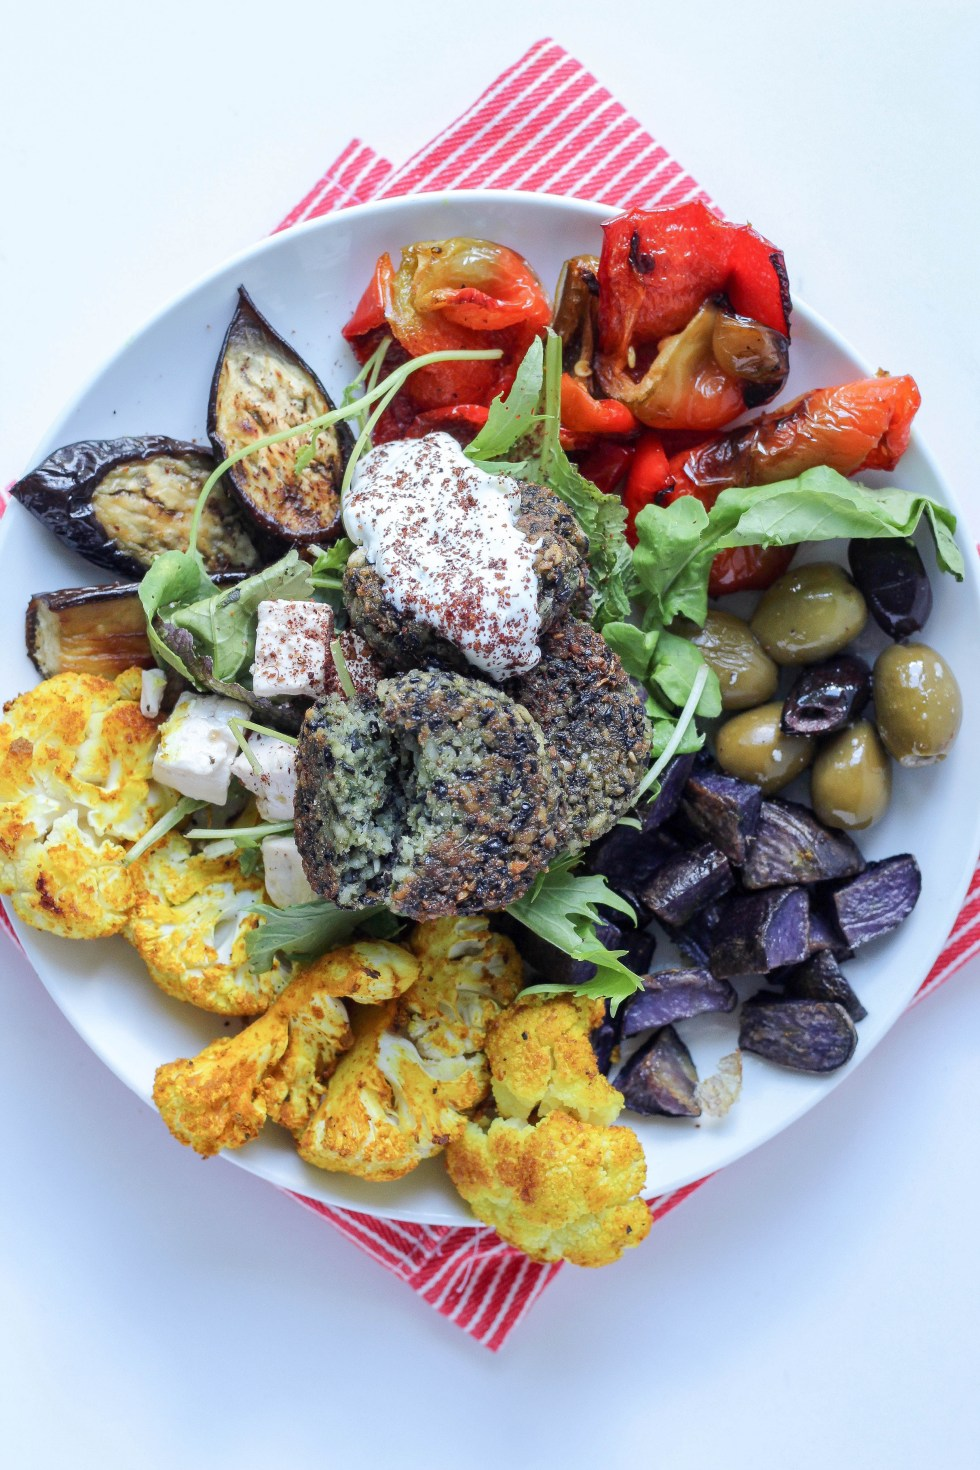 Grain free black bean falafel bowls with turmeric roasted cauliflower and purple potatoes // POP KITCHEN